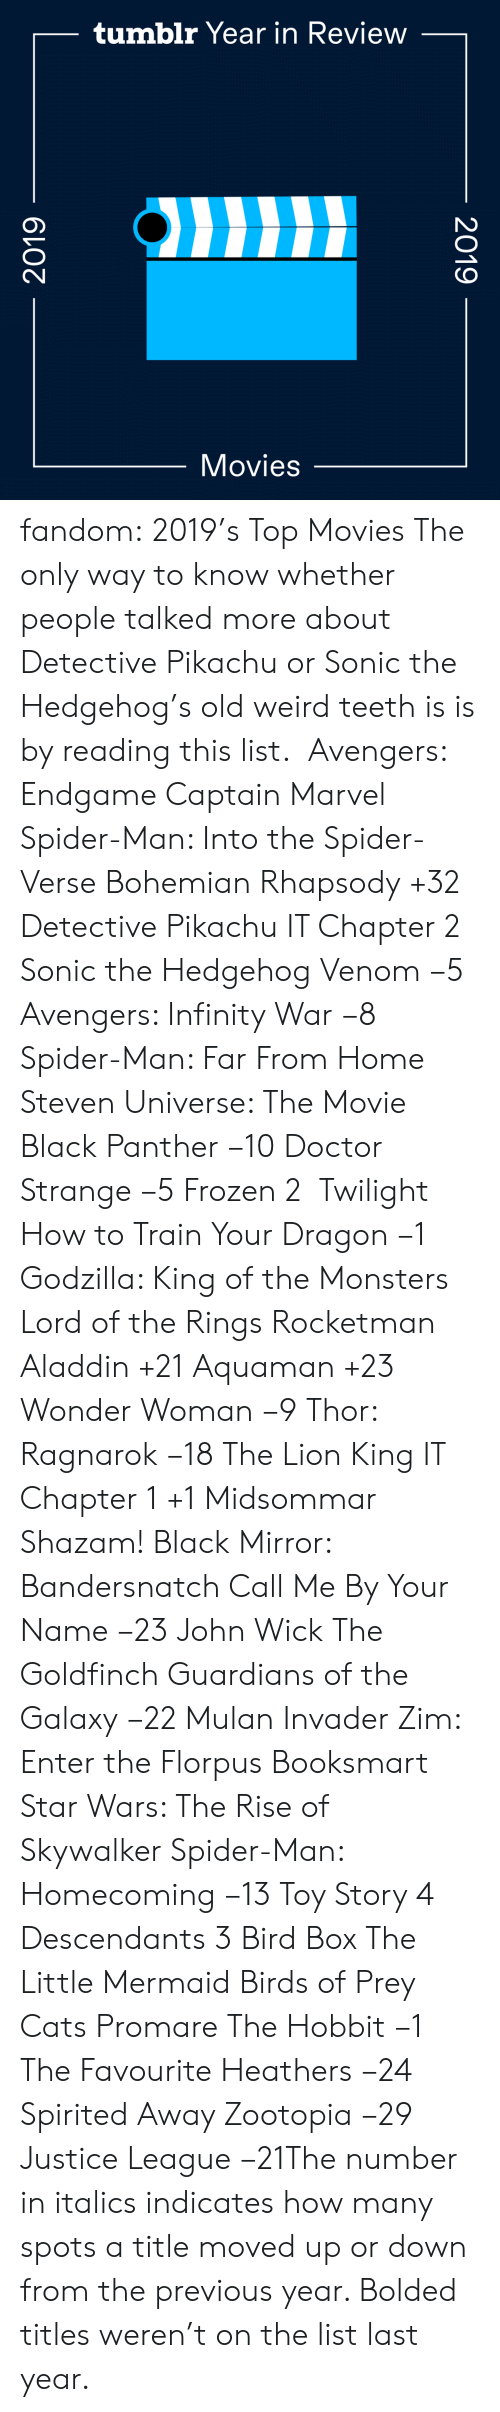 rings: tumblr Year in Review  Movies  2019  2019 fandom:  2019's Top Movies  The only way to know whether people talked more about Detective Pikachu or Sonic the Hedgehog's old weird teeth is is by reading this list.   Avengers: Endgame  Captain Marvel  Spider-Man: Into the Spider-Verse  Bohemian Rhapsody +32  Detective Pikachu  IT Chapter 2  Sonic the Hedgehog  Venom −5  Avengers: Infinity War −8  Spider-Man: Far From Home  Steven Universe: The Movie  Black Panther −10  Doctor Strange −5  Frozen 2   Twilight  How to Train Your Dragon −1  Godzilla: King of the Monsters  Lord of the Rings  Rocketman  Aladdin +21  Aquaman +23  Wonder Woman −9  Thor: Ragnarok −18  The Lion King  IT Chapter 1 +1  Midsommar  Shazam!  Black Mirror: Bandersnatch  Call Me By Your Name −23  John Wick  The Goldfinch  Guardians of the Galaxy −22  Mulan  Invader Zim: Enter the Florpus  Booksmart  Star Wars: The Rise of Skywalker  Spider-Man: Homecoming −13  Toy Story 4  Descendants 3  Bird Box  The Little Mermaid  Birds of Prey  Cats  Promare  The Hobbit −1  The Favourite  Heathers −24  Spirited Away  Zootopia −29 Justice League −21The number in italics indicates how many spots a title moved up or down from the previous year. Bolded titles weren't on the list last year.